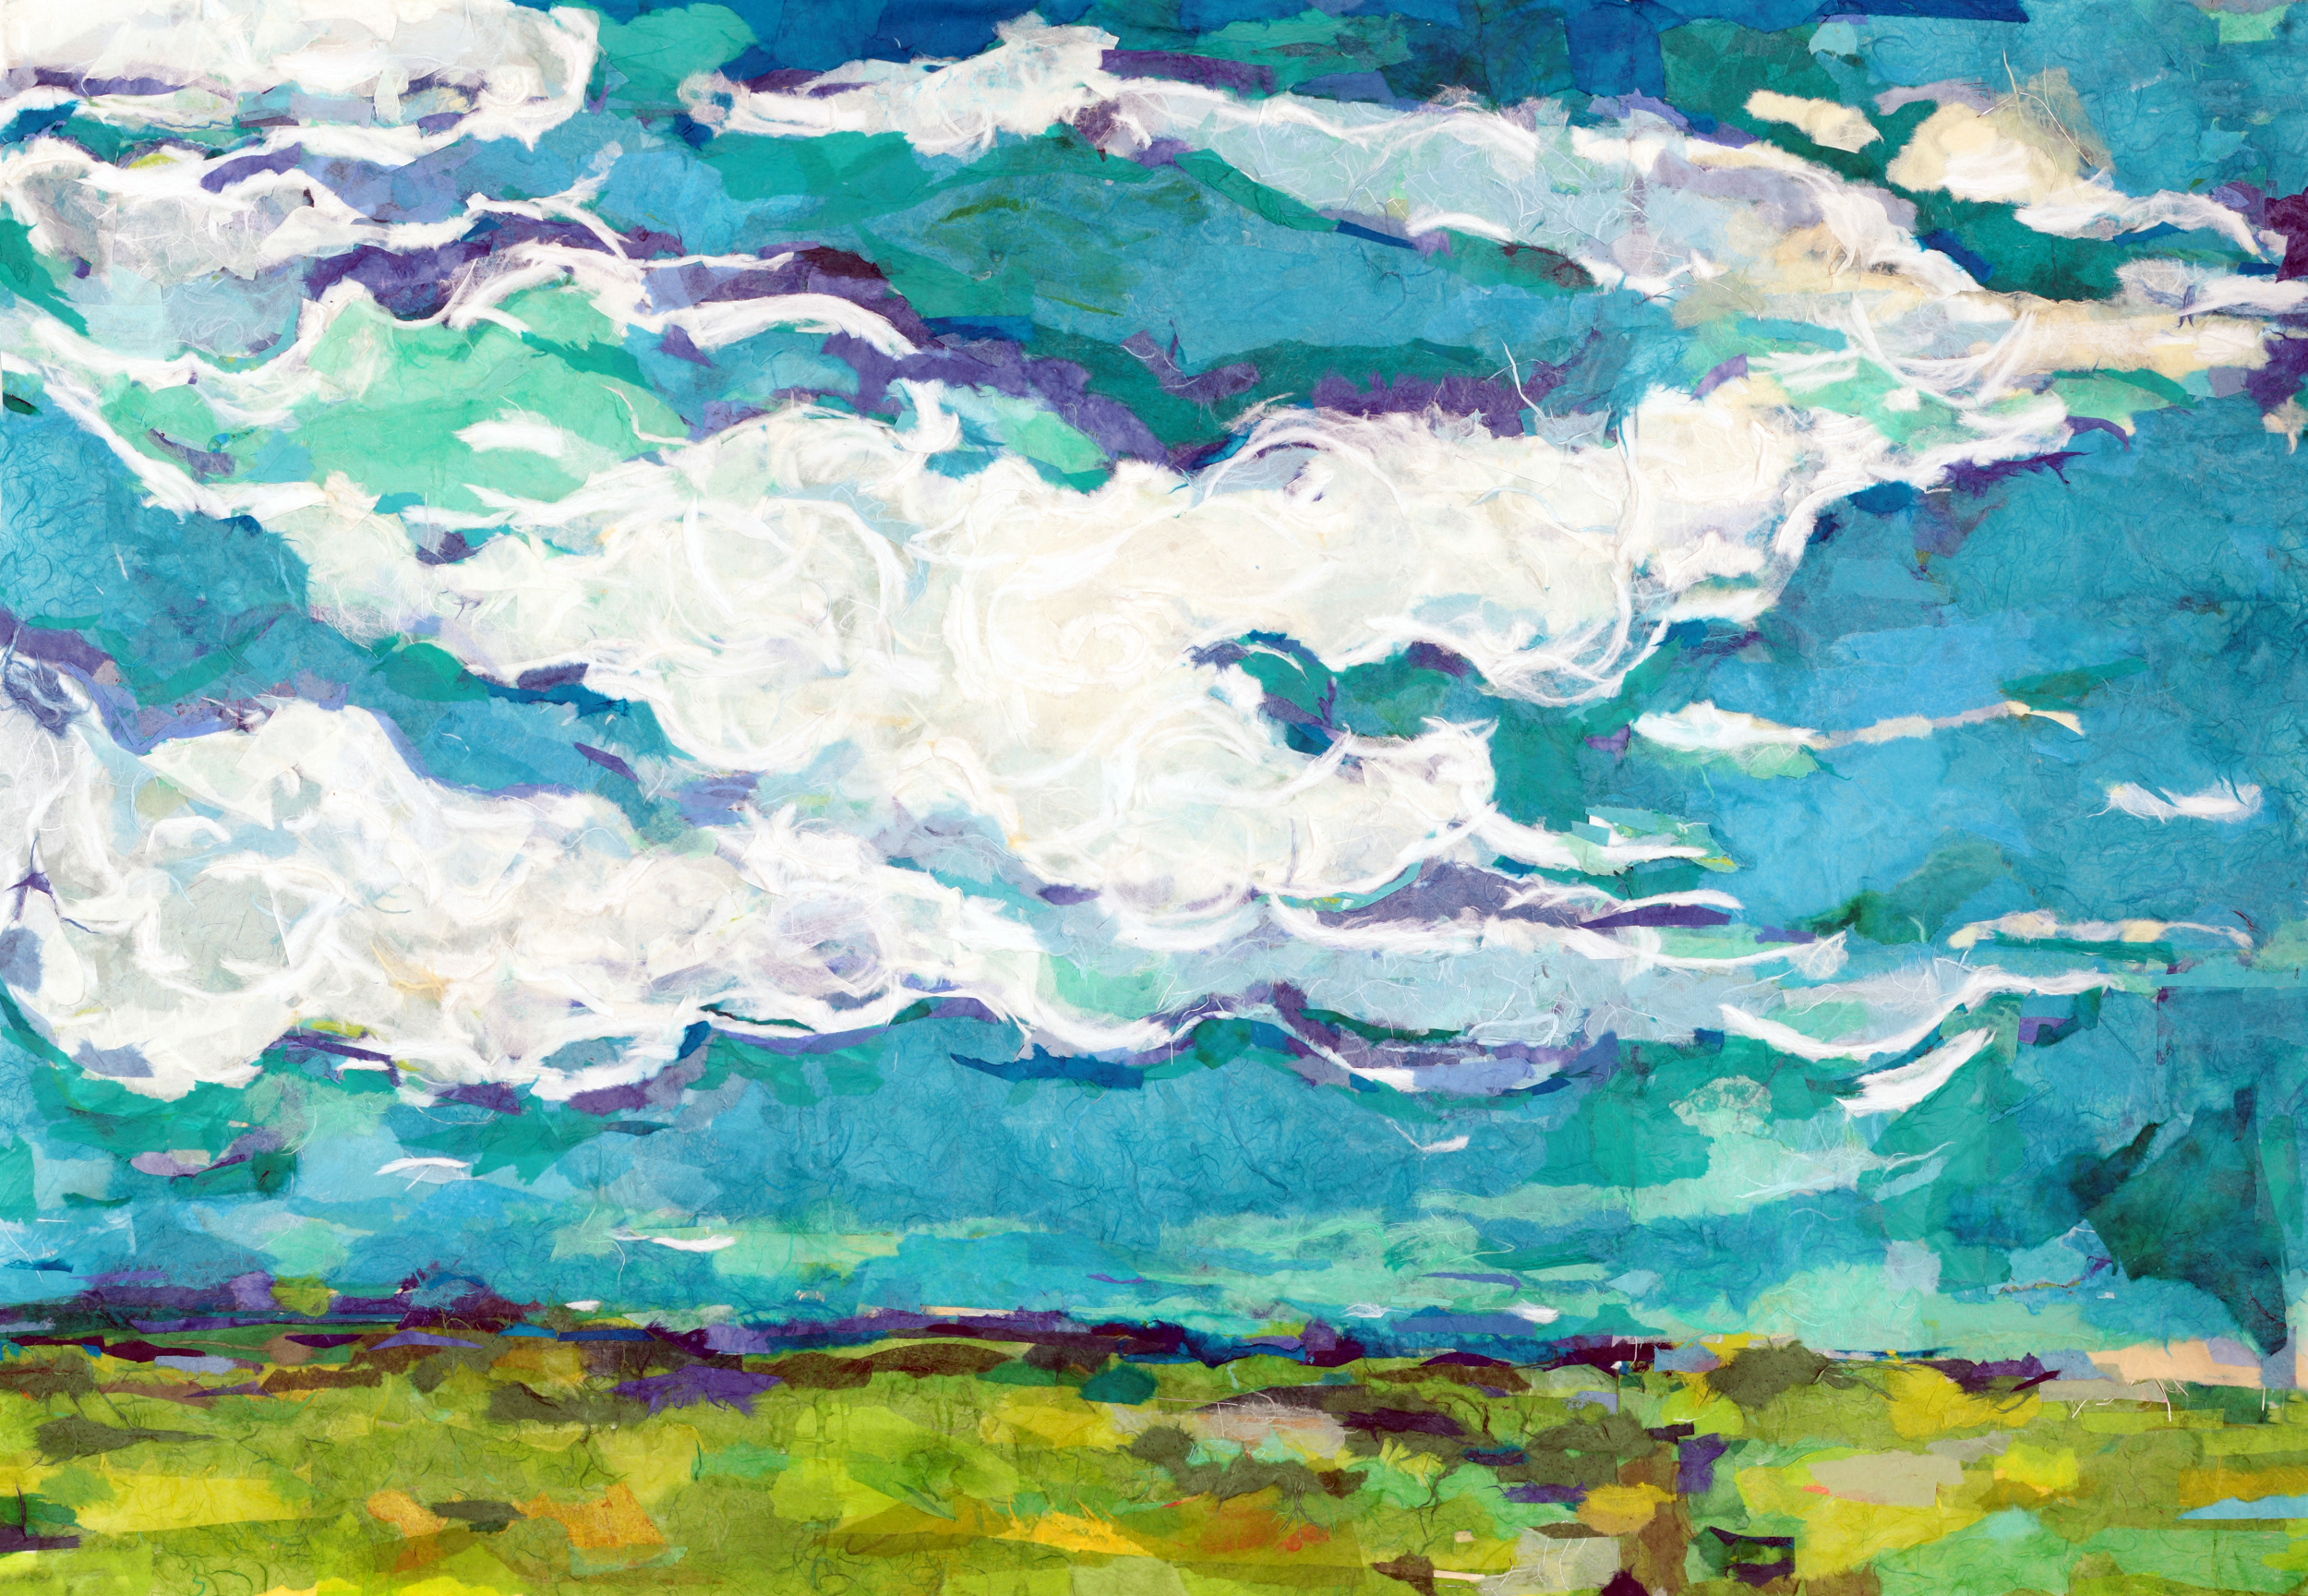 Prairie Sky - 32 x 44 in. / $4,200                                                                                                ↑ Top of page ↑Torn artisanal papers on Mylar film / Custom framed with Conservation Clear GlassClick here to see pieces similar to Prairie Sky.